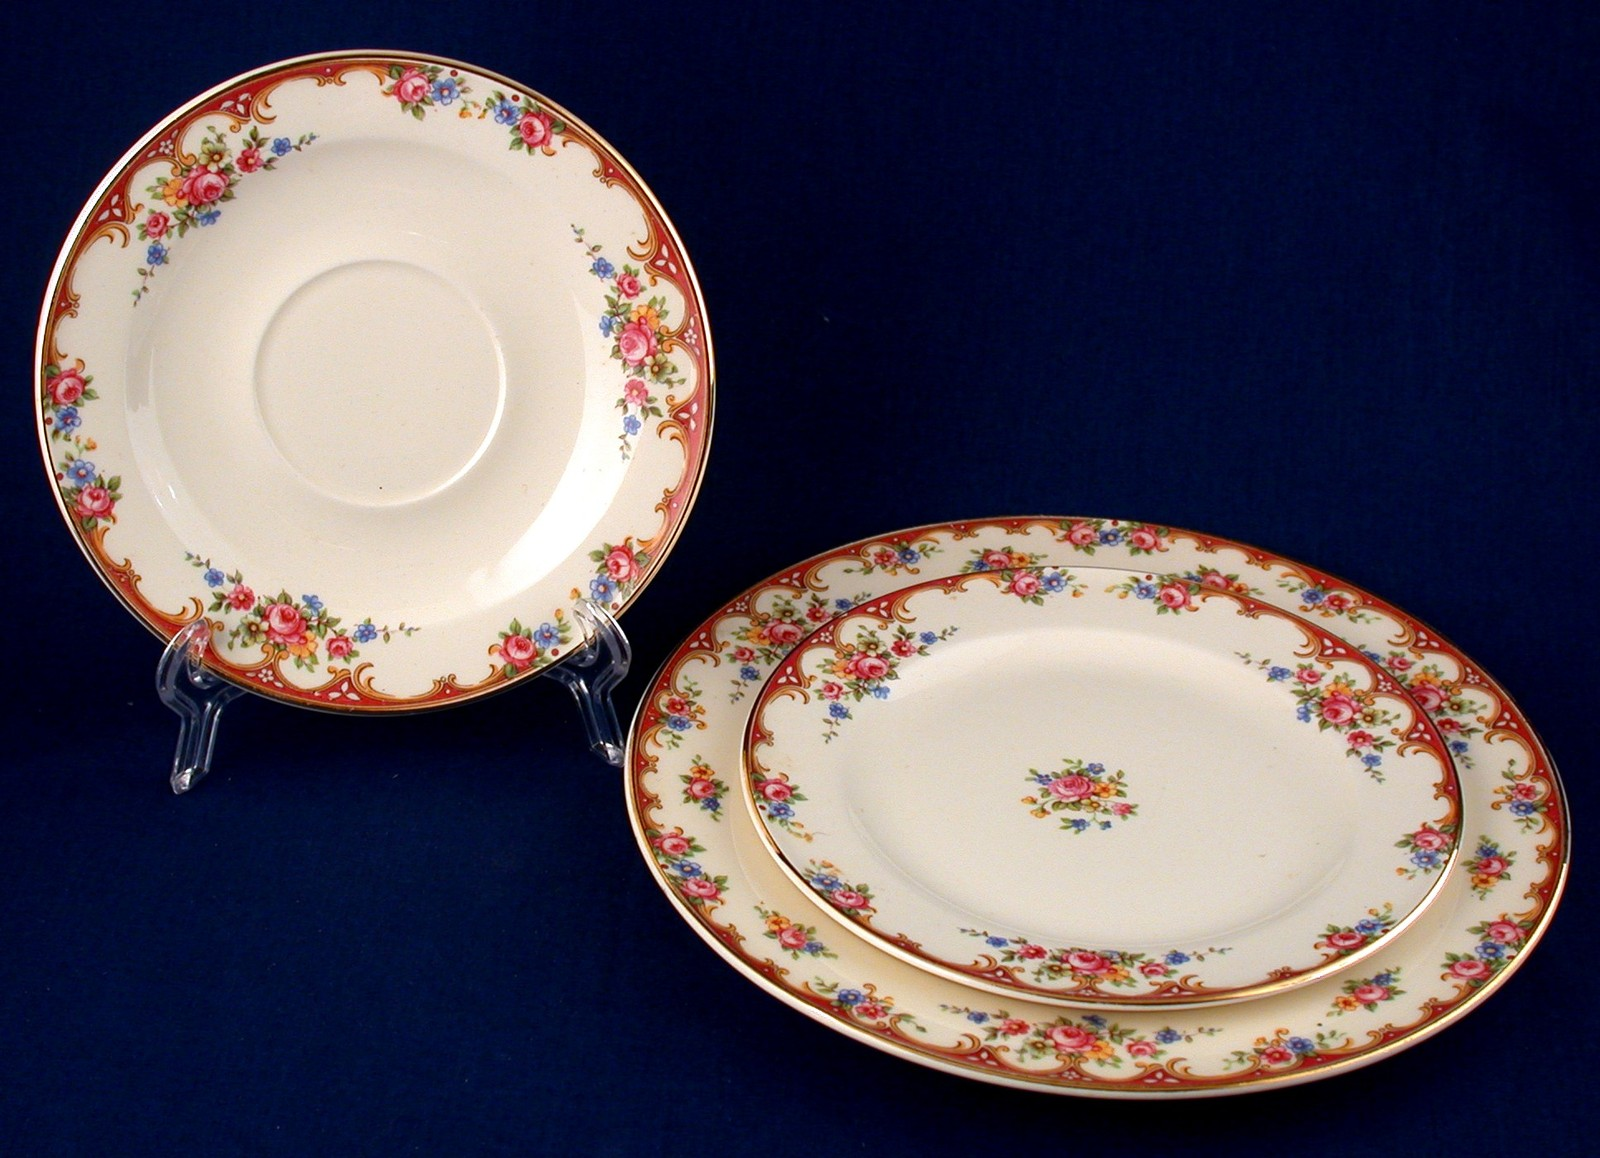 Edwin Knowles 3 -Pc Vintage 1938 Lunch Bread Plate Saucer Hostess Shape & Edwin Knowles 3 -Pc Vintage 1938 Lunch and 50 similar items